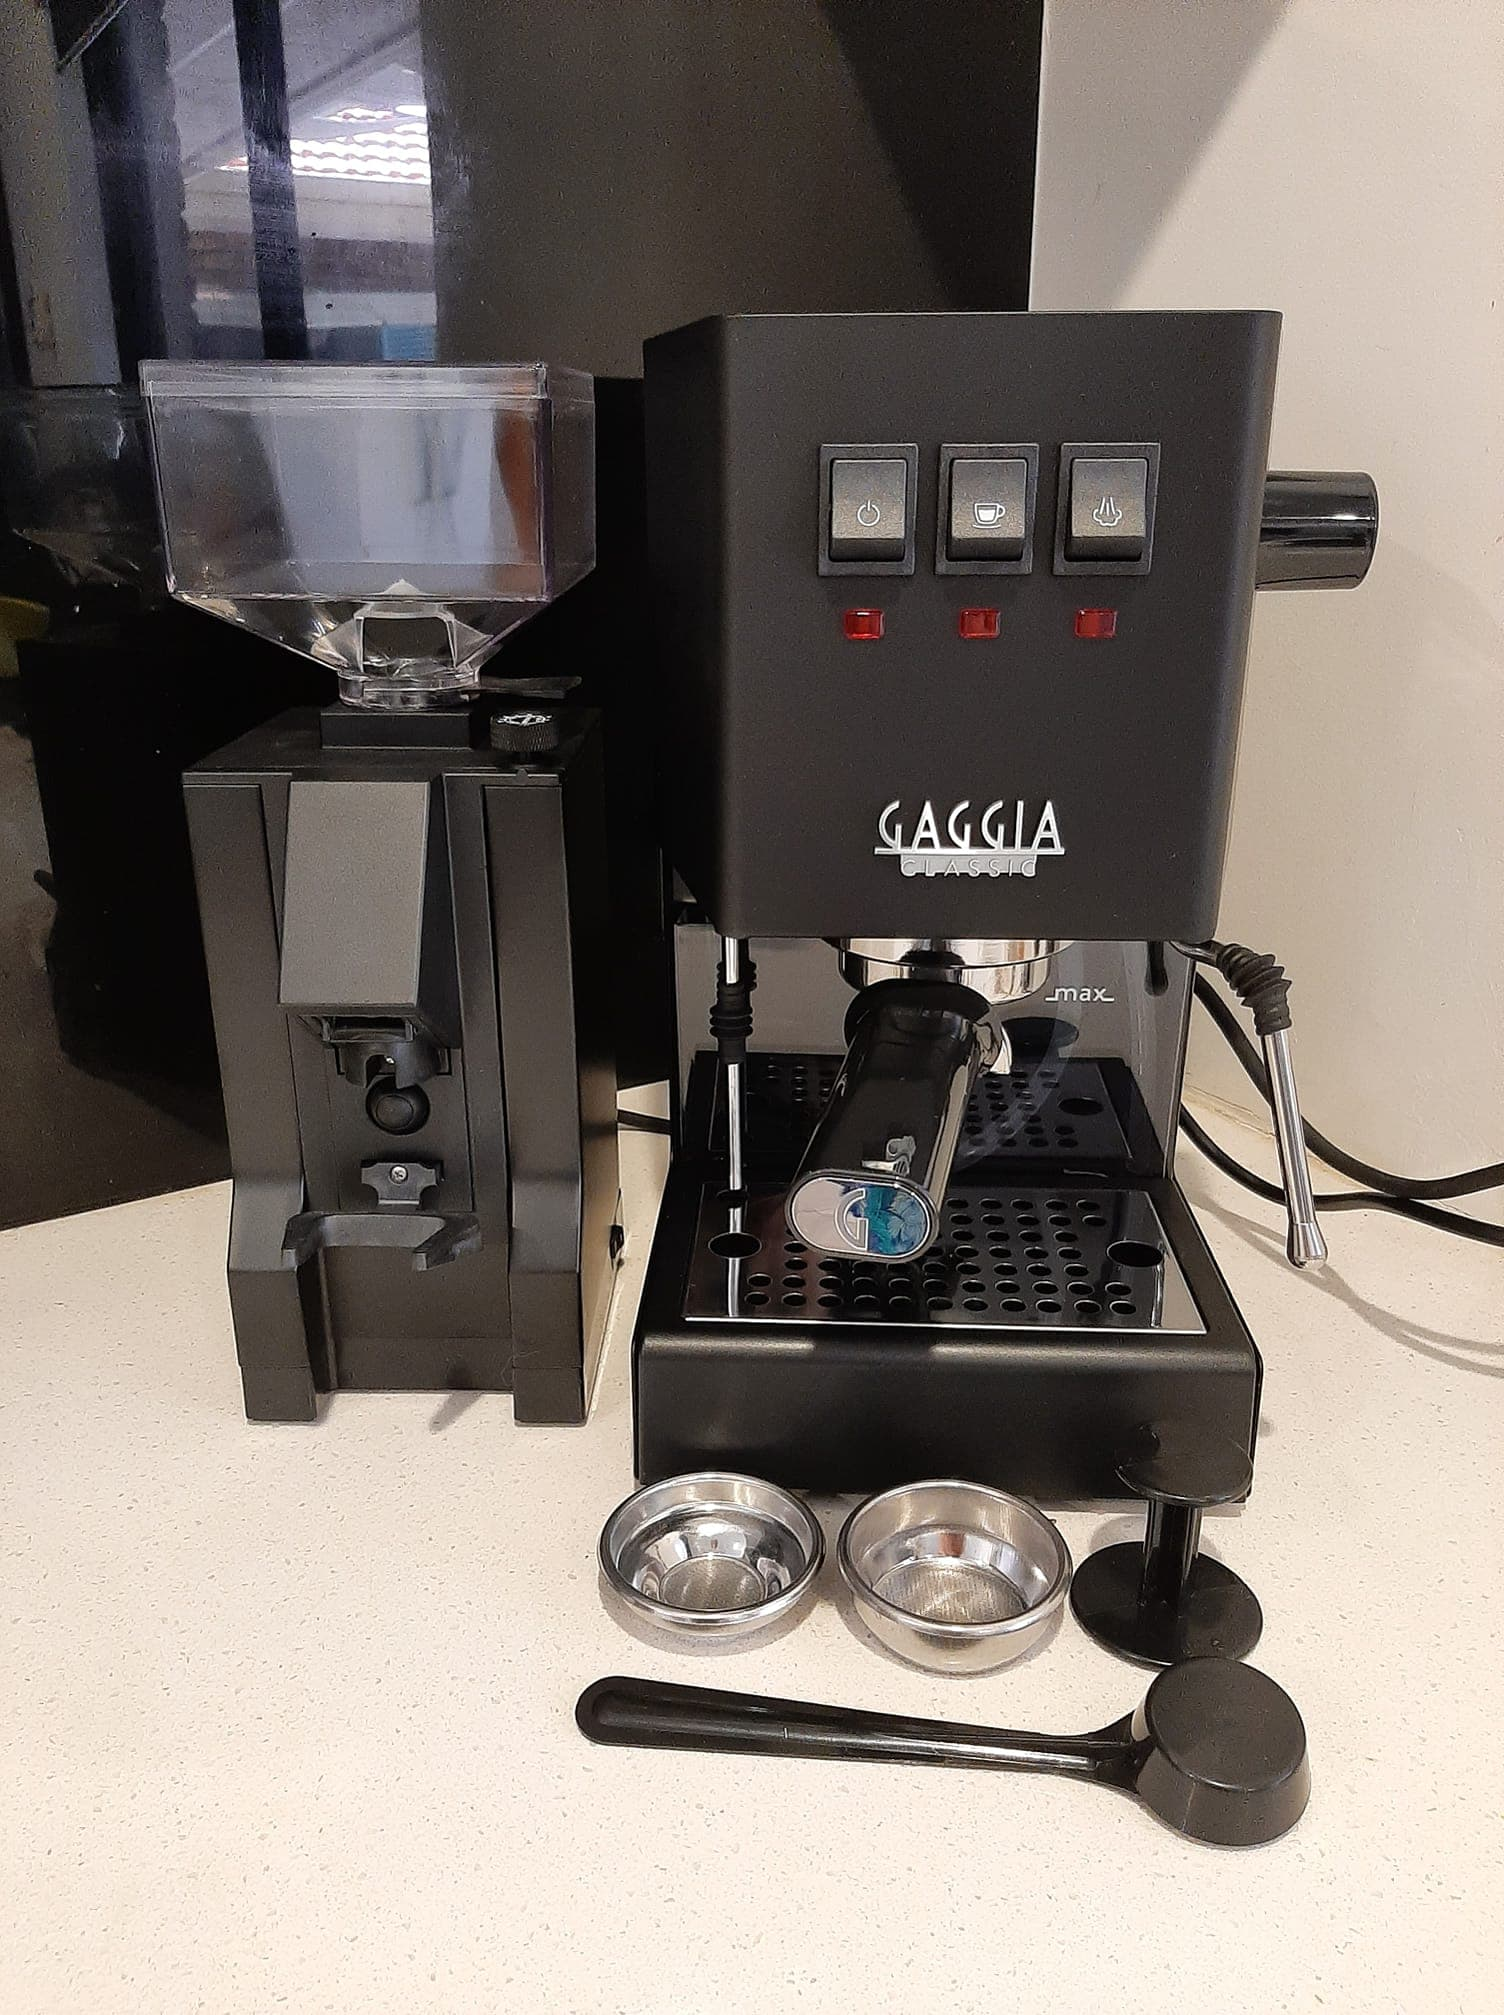 Gaggia Classic Pro extract rich coffee flavor